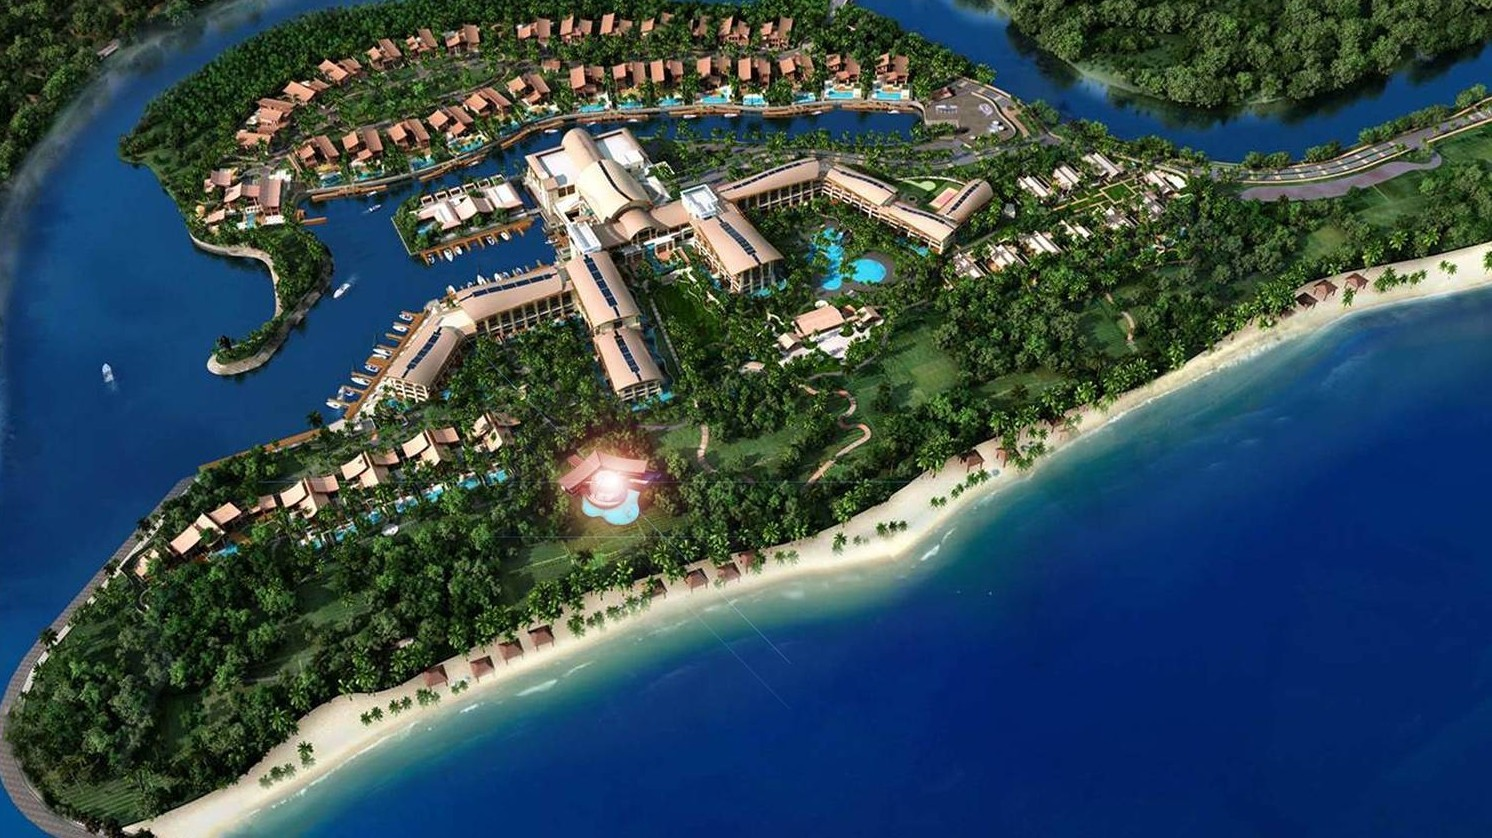 Sanya St Regis Private Club, by Archilier Architecture